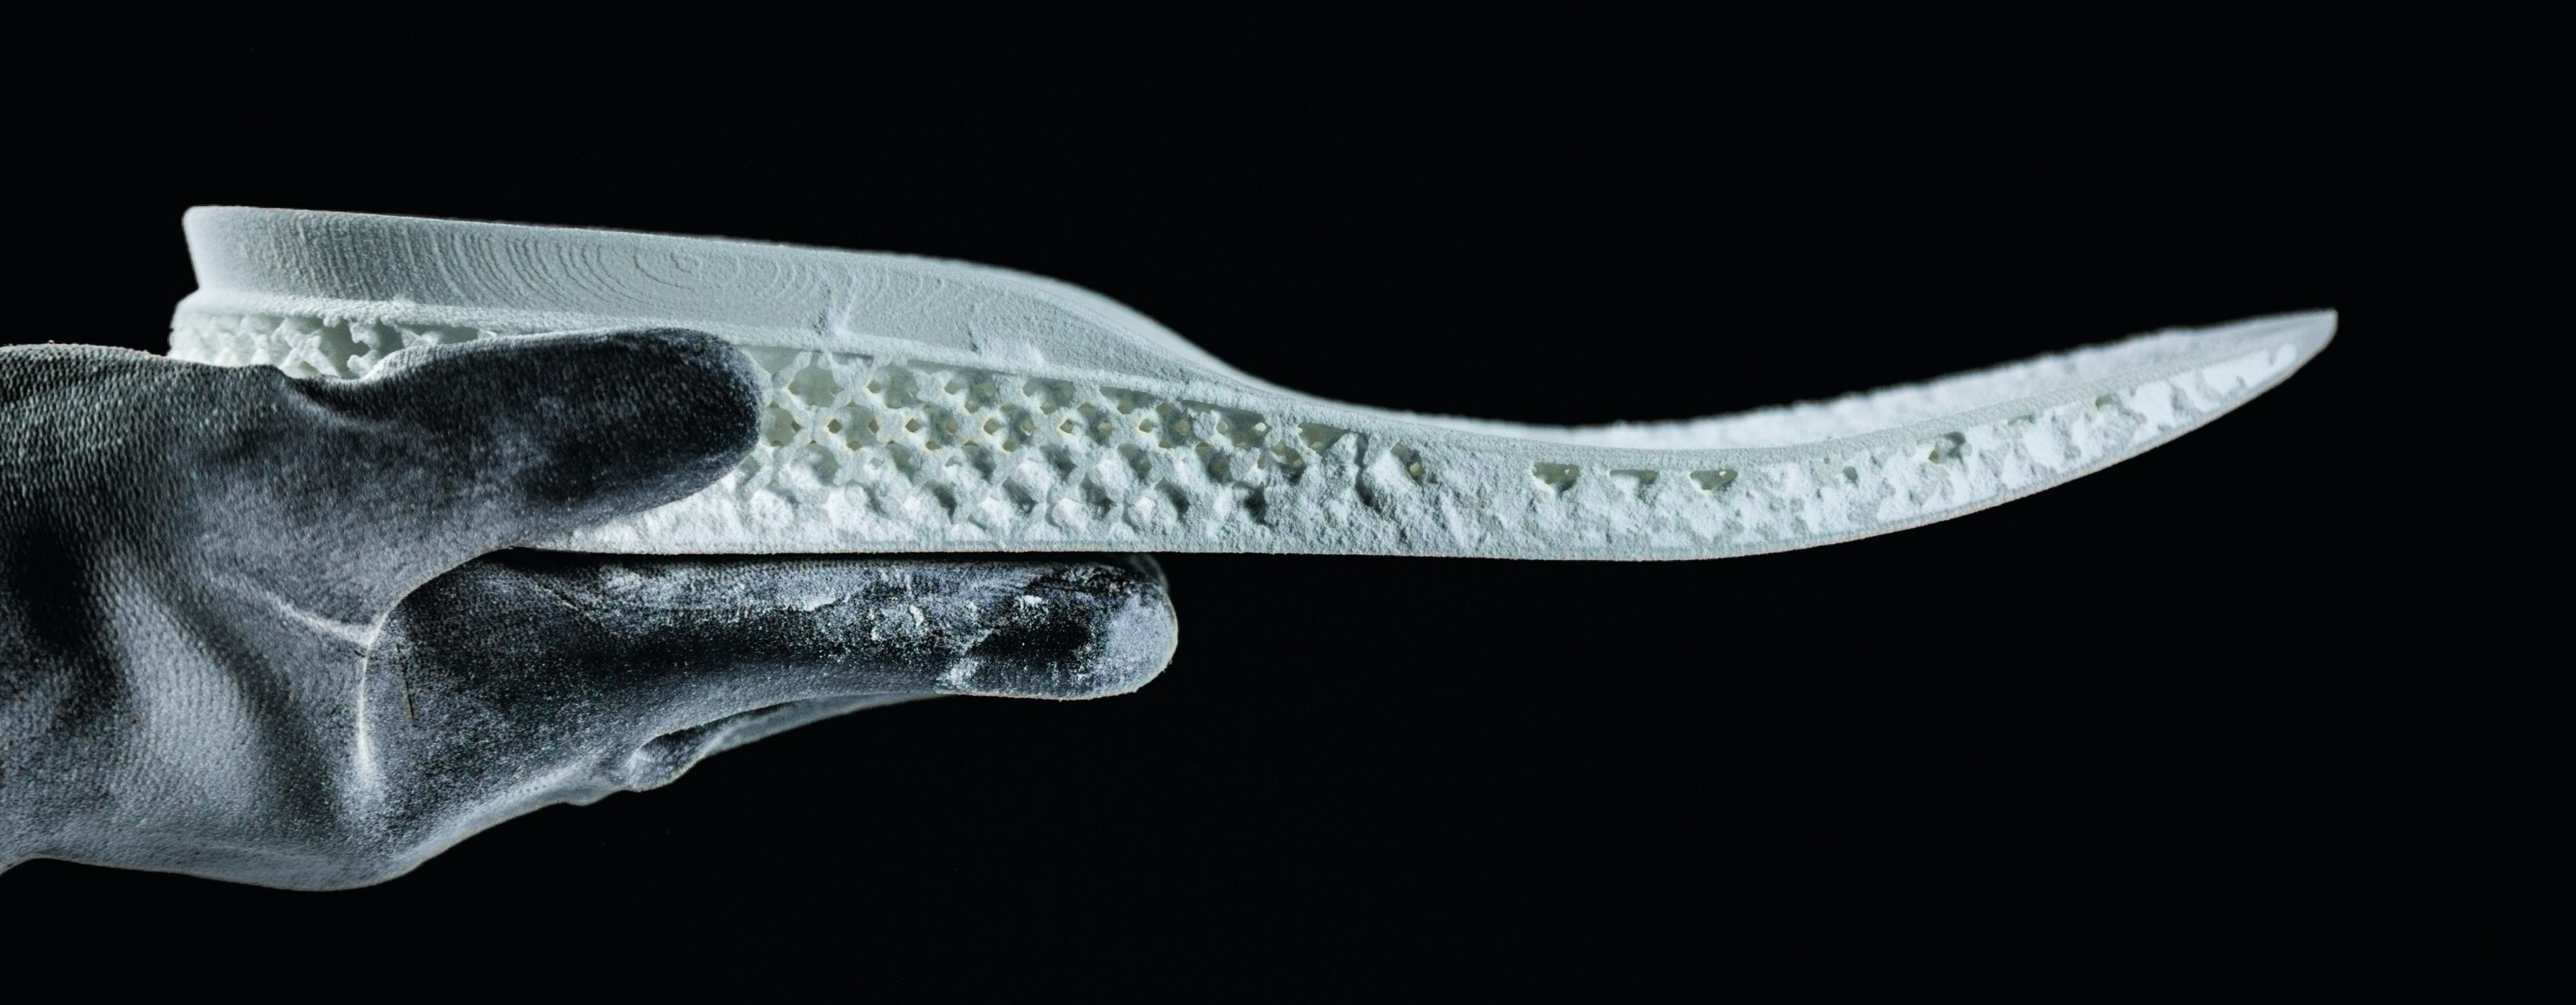 3D Printed Sneakers and Mass Customization – Is Adidas There